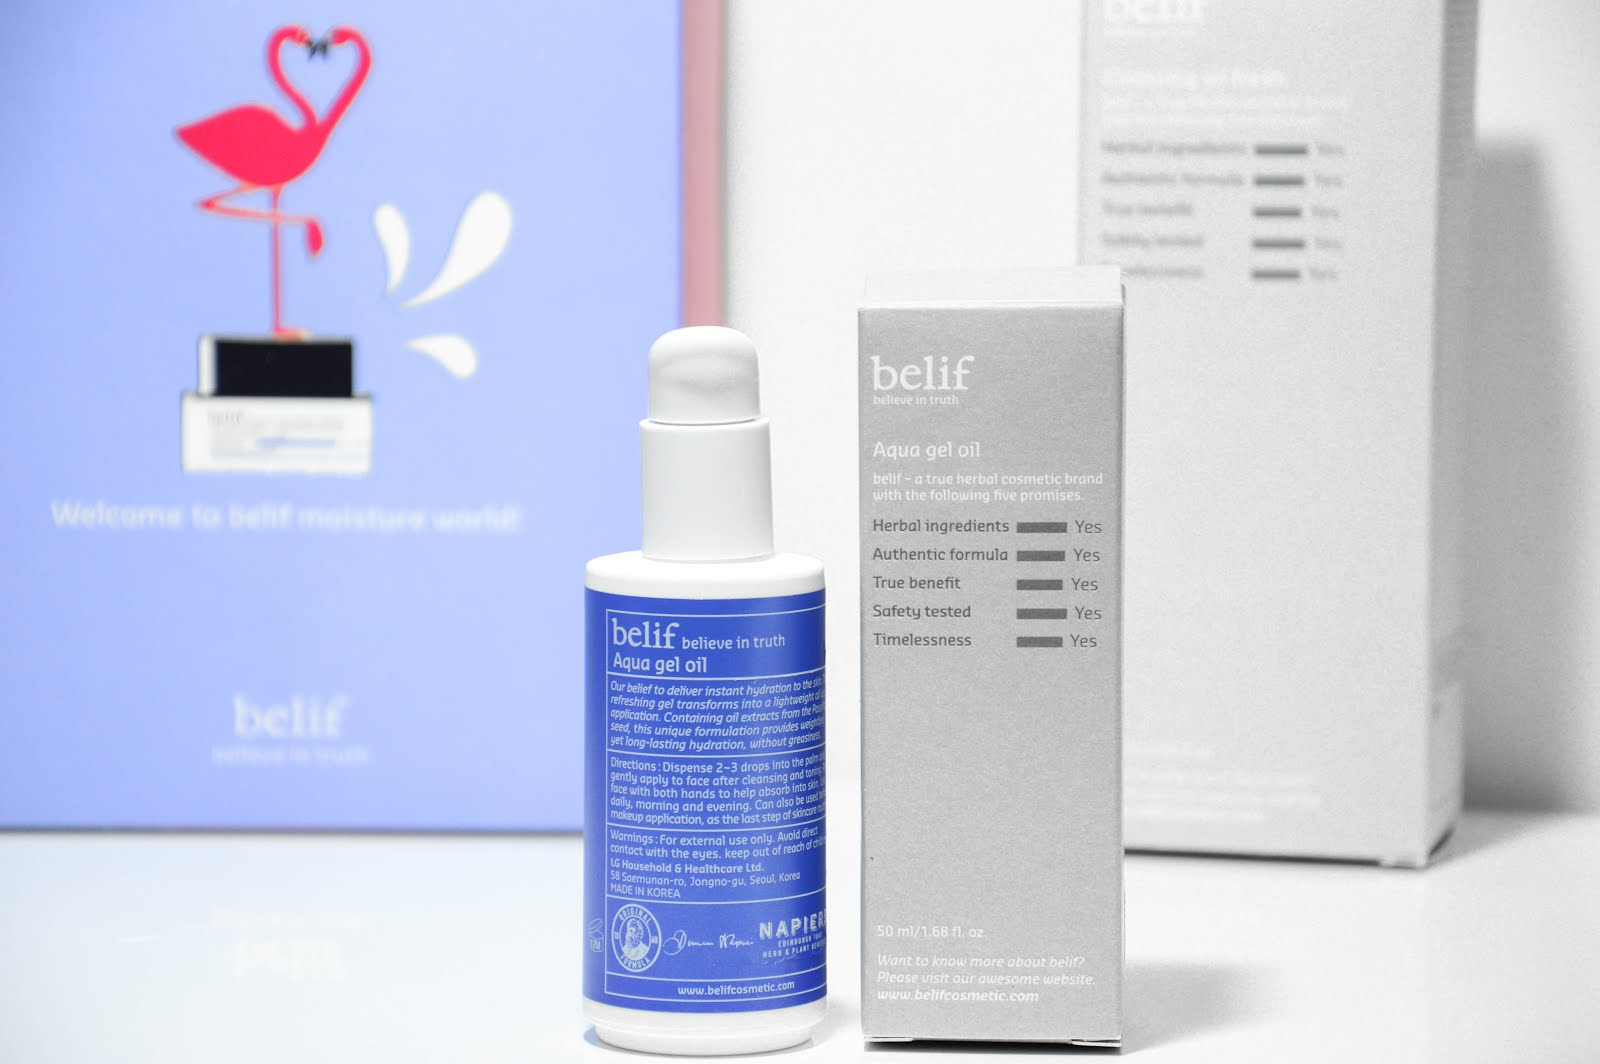 belif aqua gel oil review